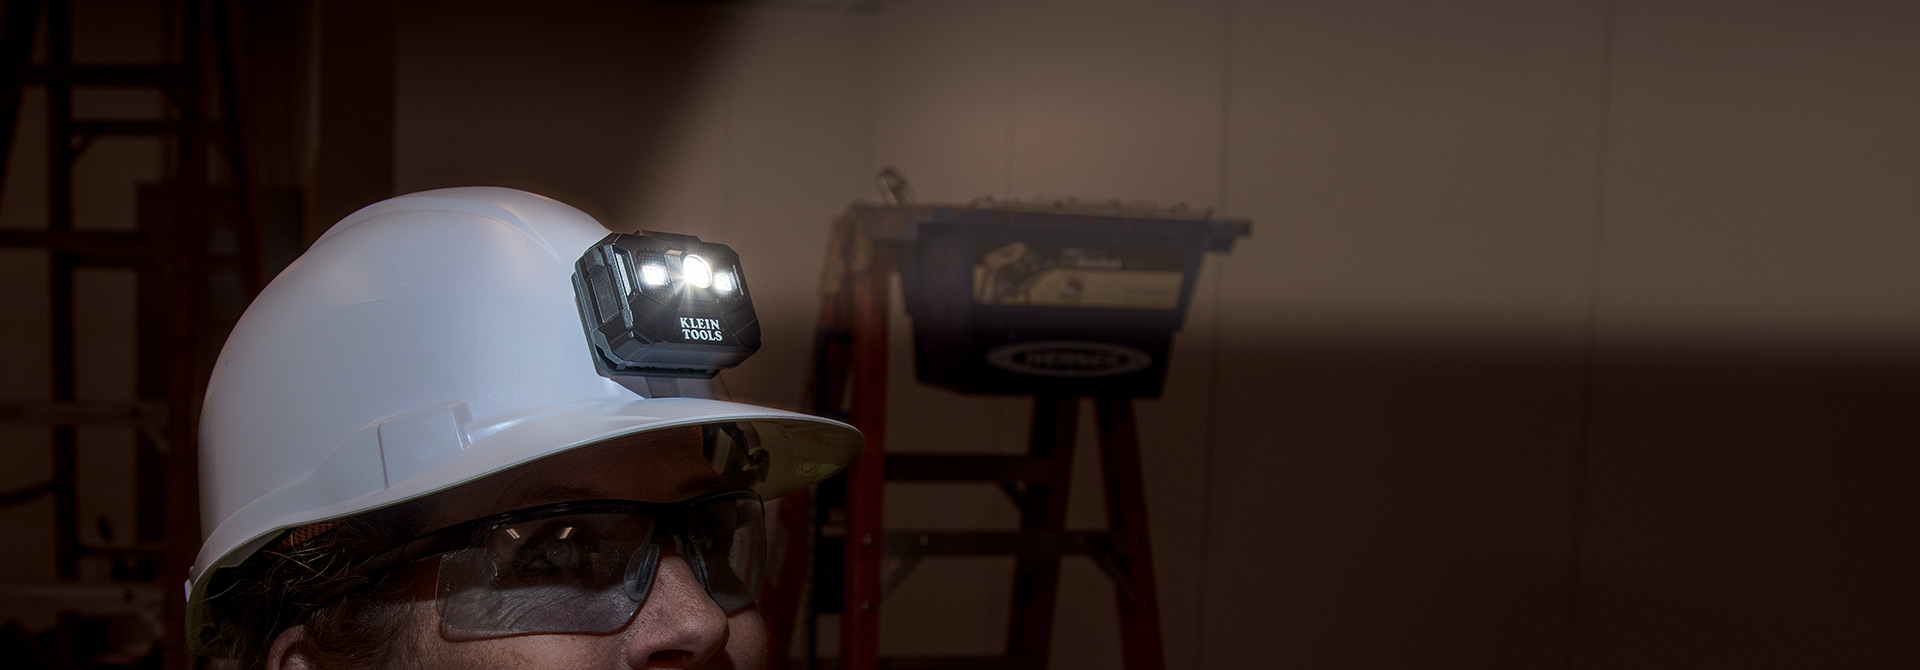 RECHARGEABLE HARD HAT\r\nHeadlamp\/Worklight